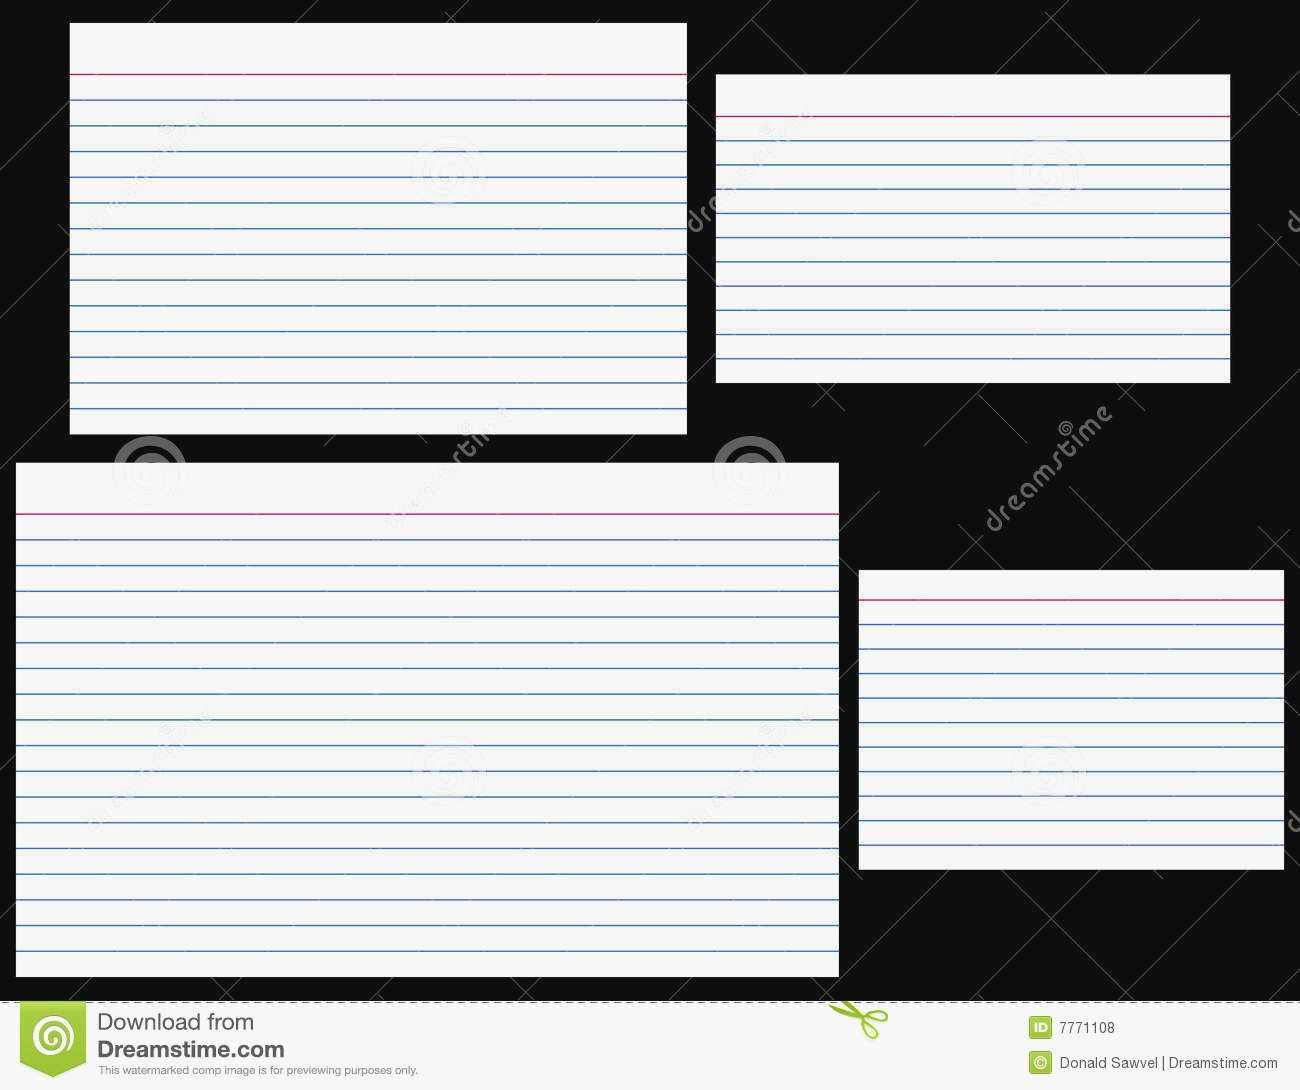 67 The Best 4 X 6 Index Card Template For Microsoft Word Templates by 4 X 6 Index Card Template For Microsoft Word